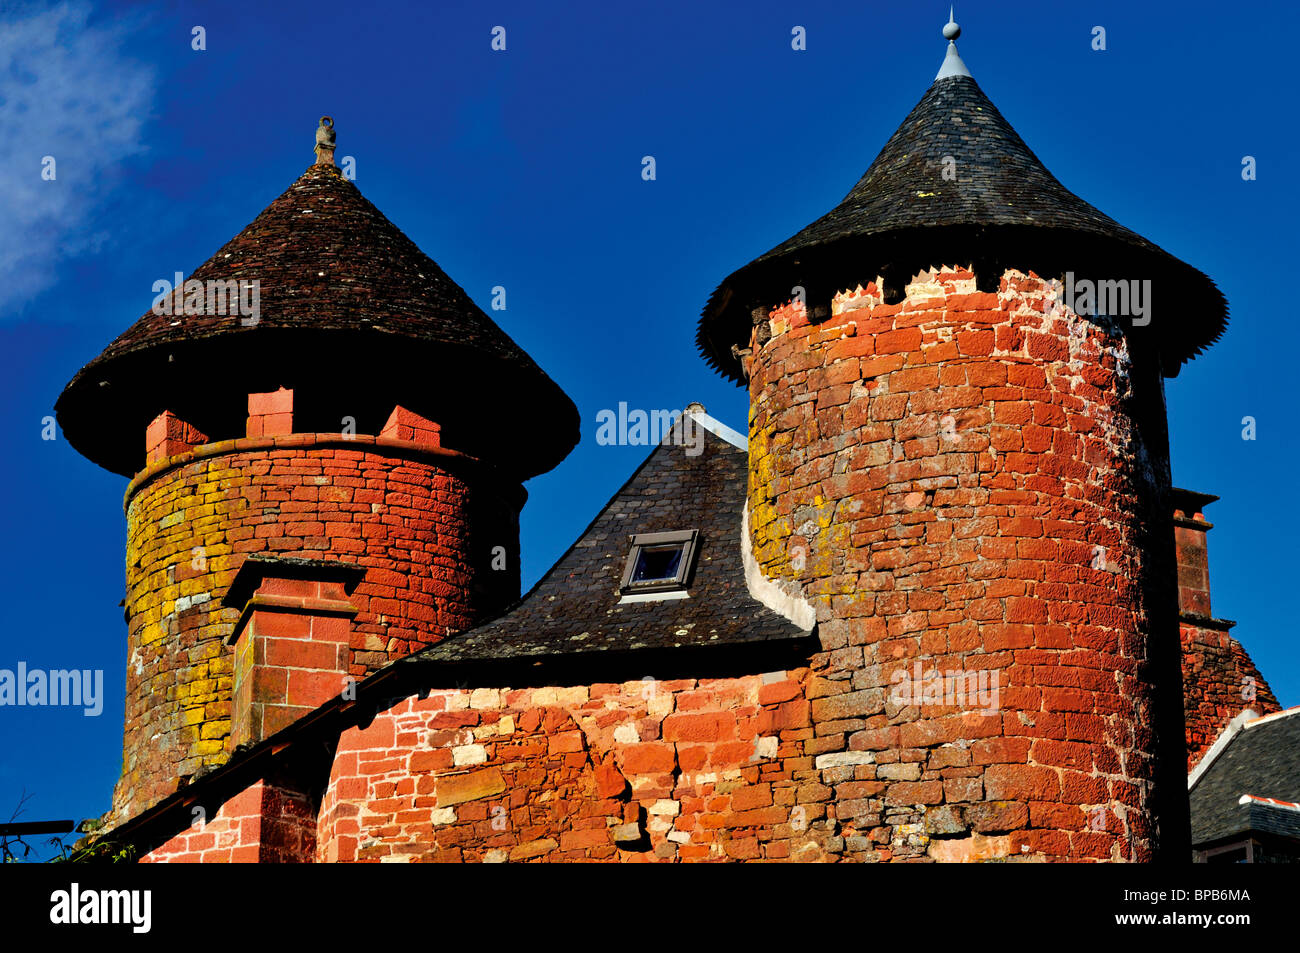 France: Manor house in Collonges-la-Rouge - Stock Image